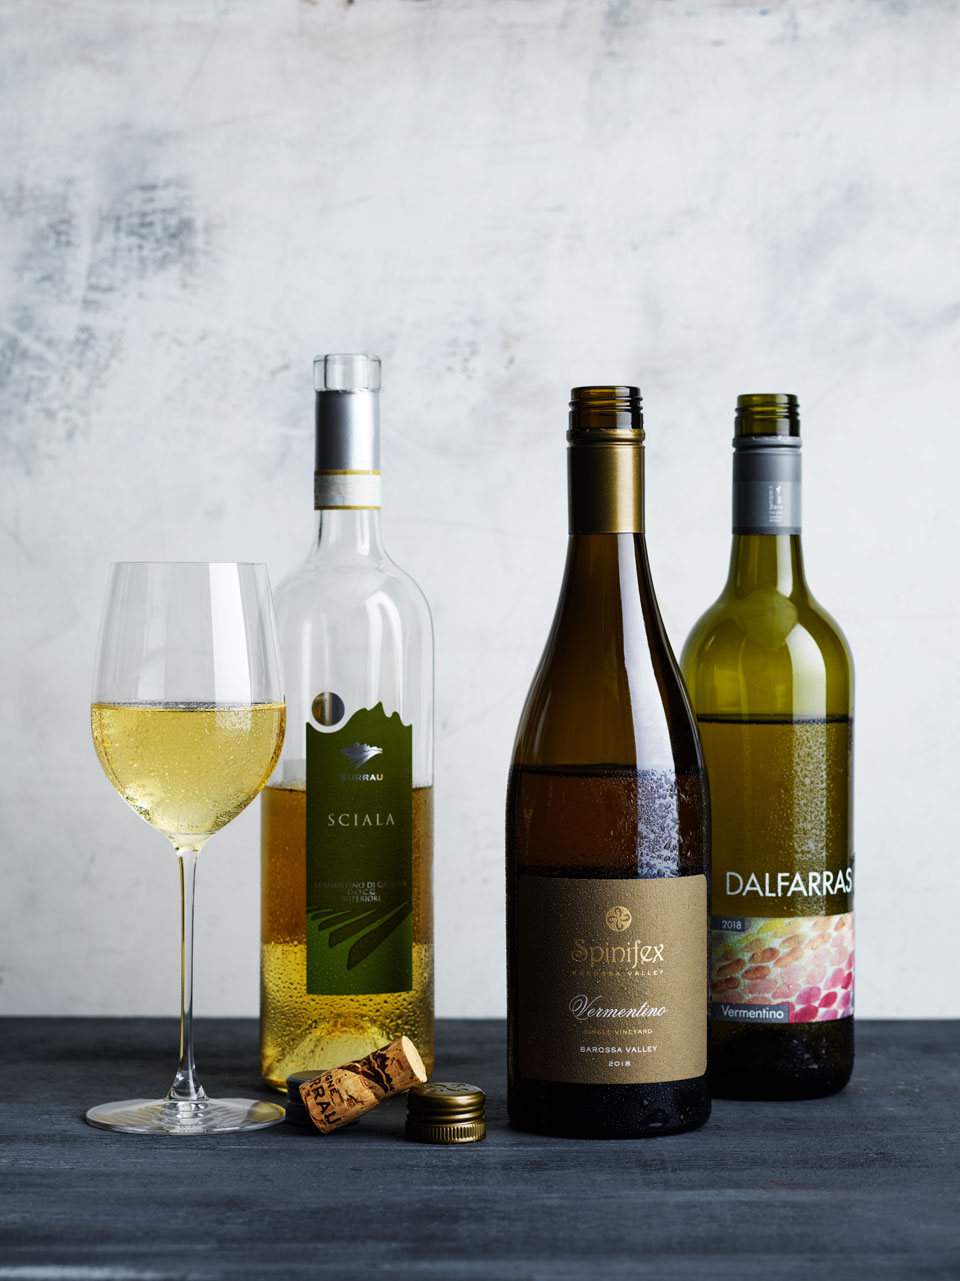 Spinifex Single Vineyard Vermentino received a 96 from the expert panel.